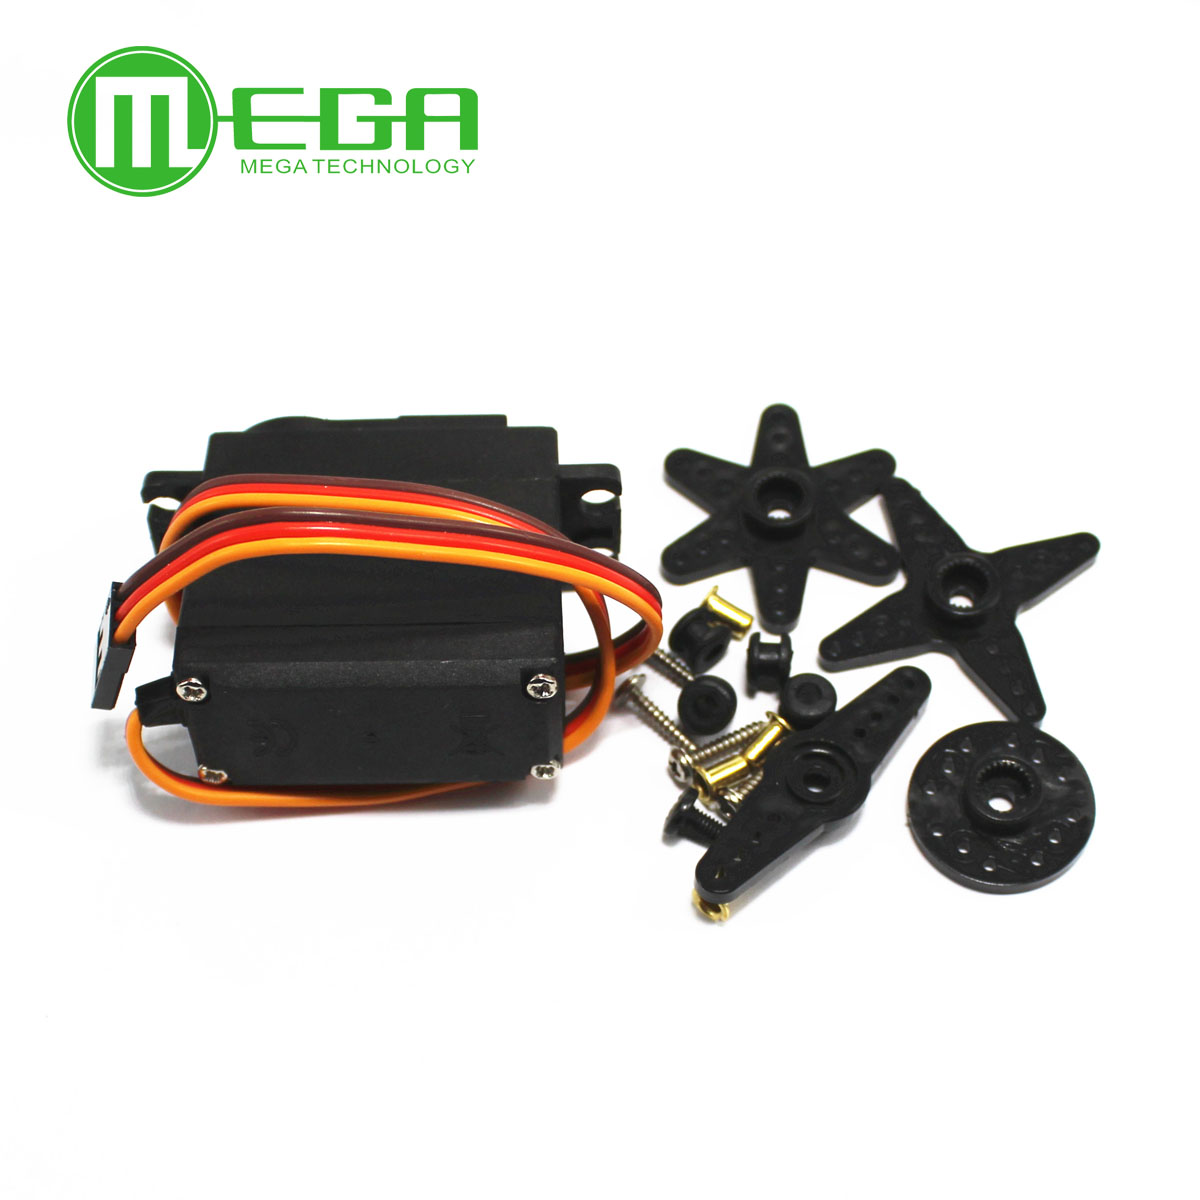 Image 4 - 13KG 15KG Servos Digital MG995 MG996 Servo Metal Gear for Futaba JR Car RC Model Helicopter Boat-in Integrated Circuits from Electronic Components & Supplies